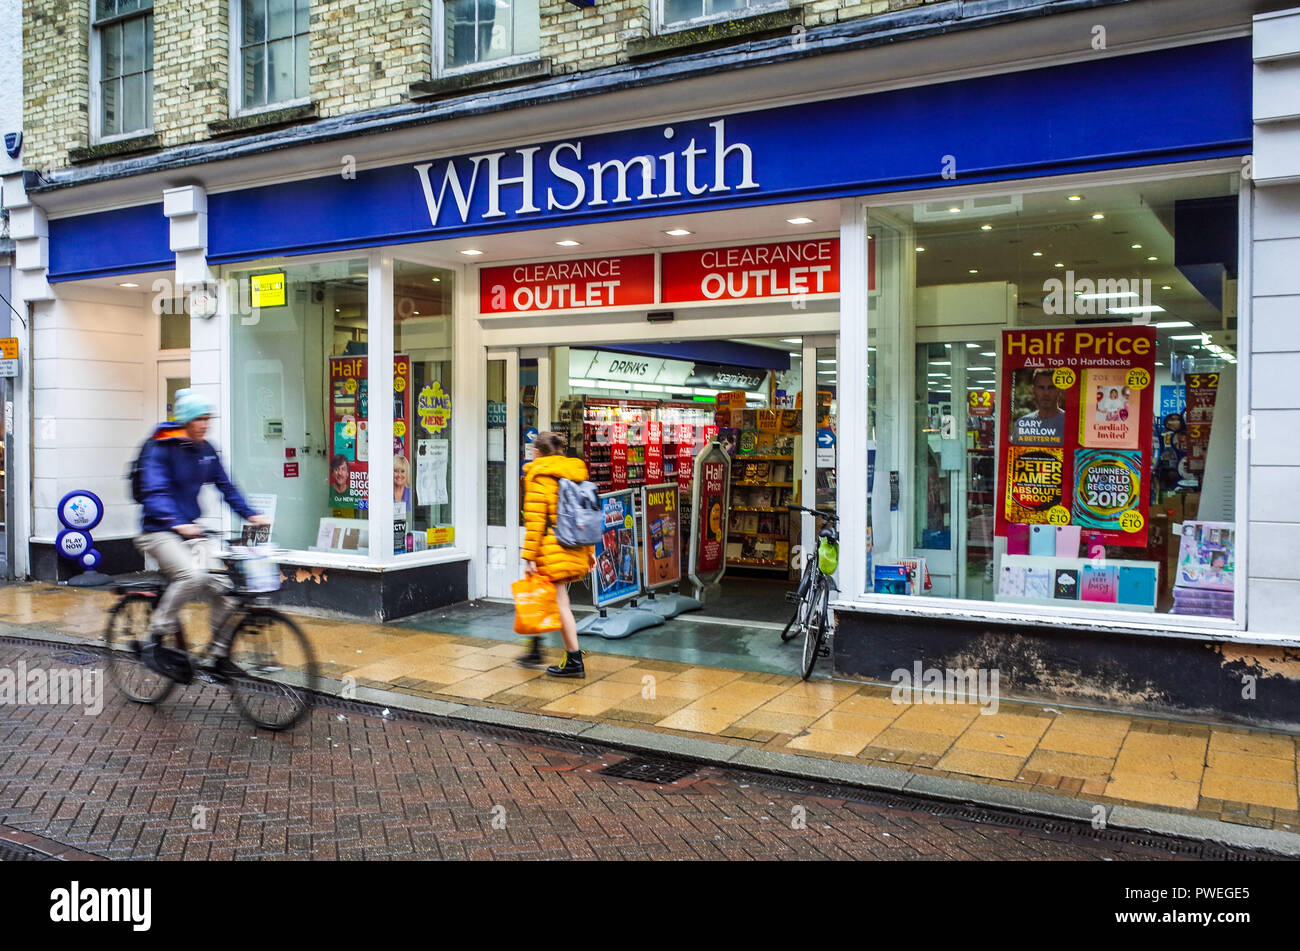 WHSmith Store - WH Smith shop in central Cambridge UK - Stock Image